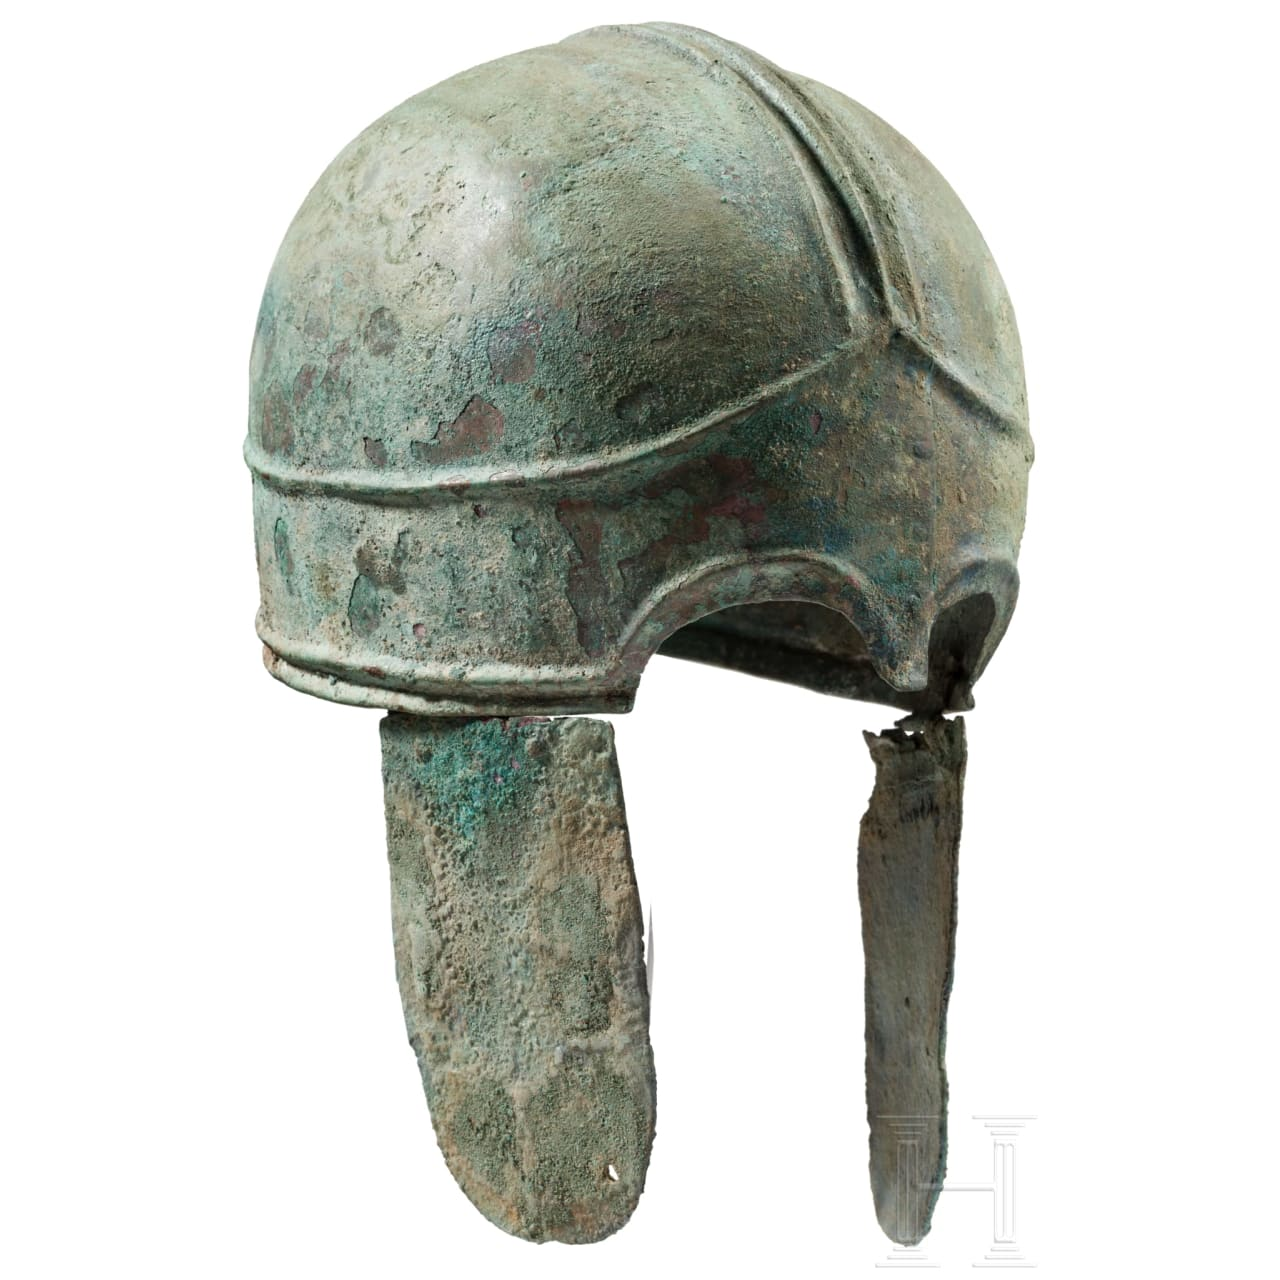 A pseudo-Chalcidian bronze helmet, northern Black Sea area, 4th century B.C.